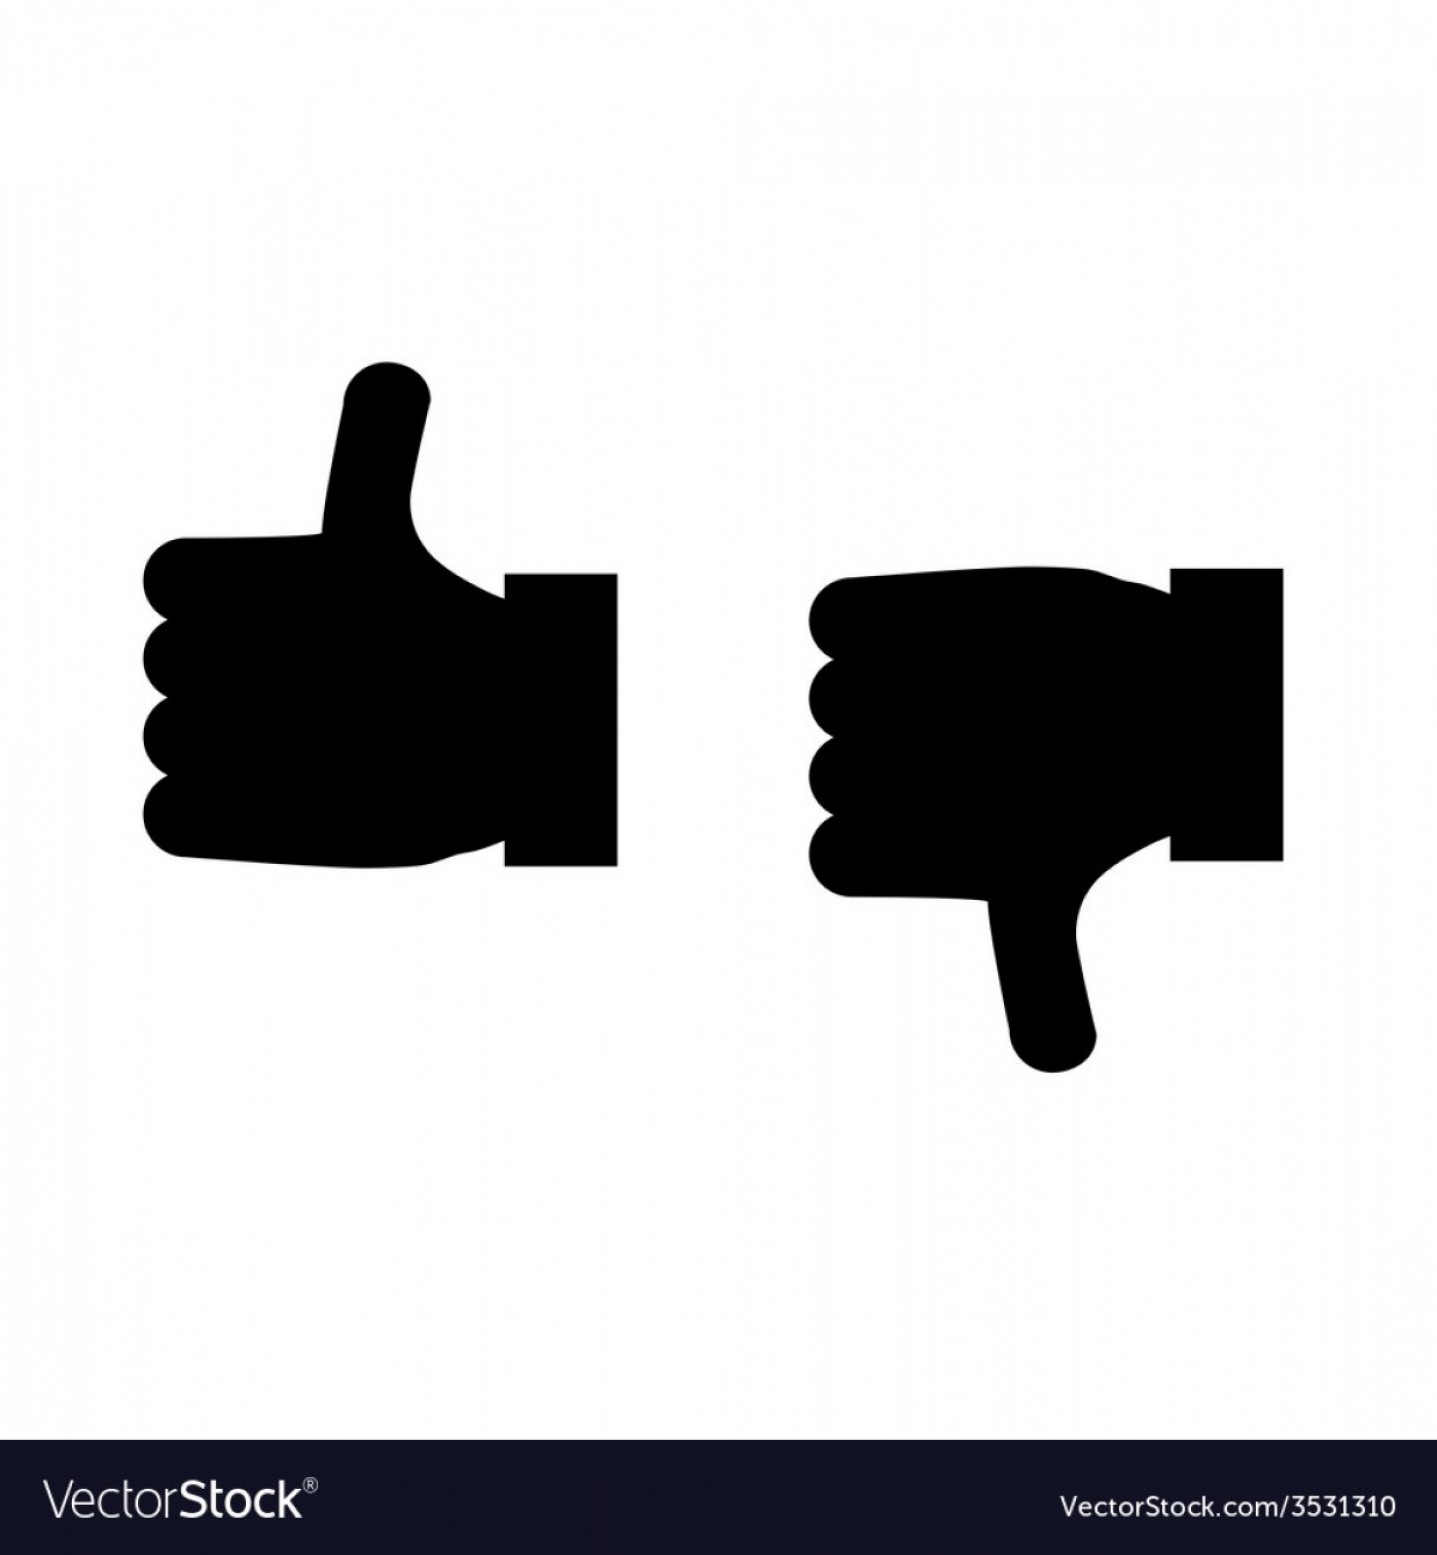 Vector Thumbs Up Down: Thumbs Up And Thumbs Down Icon Vector